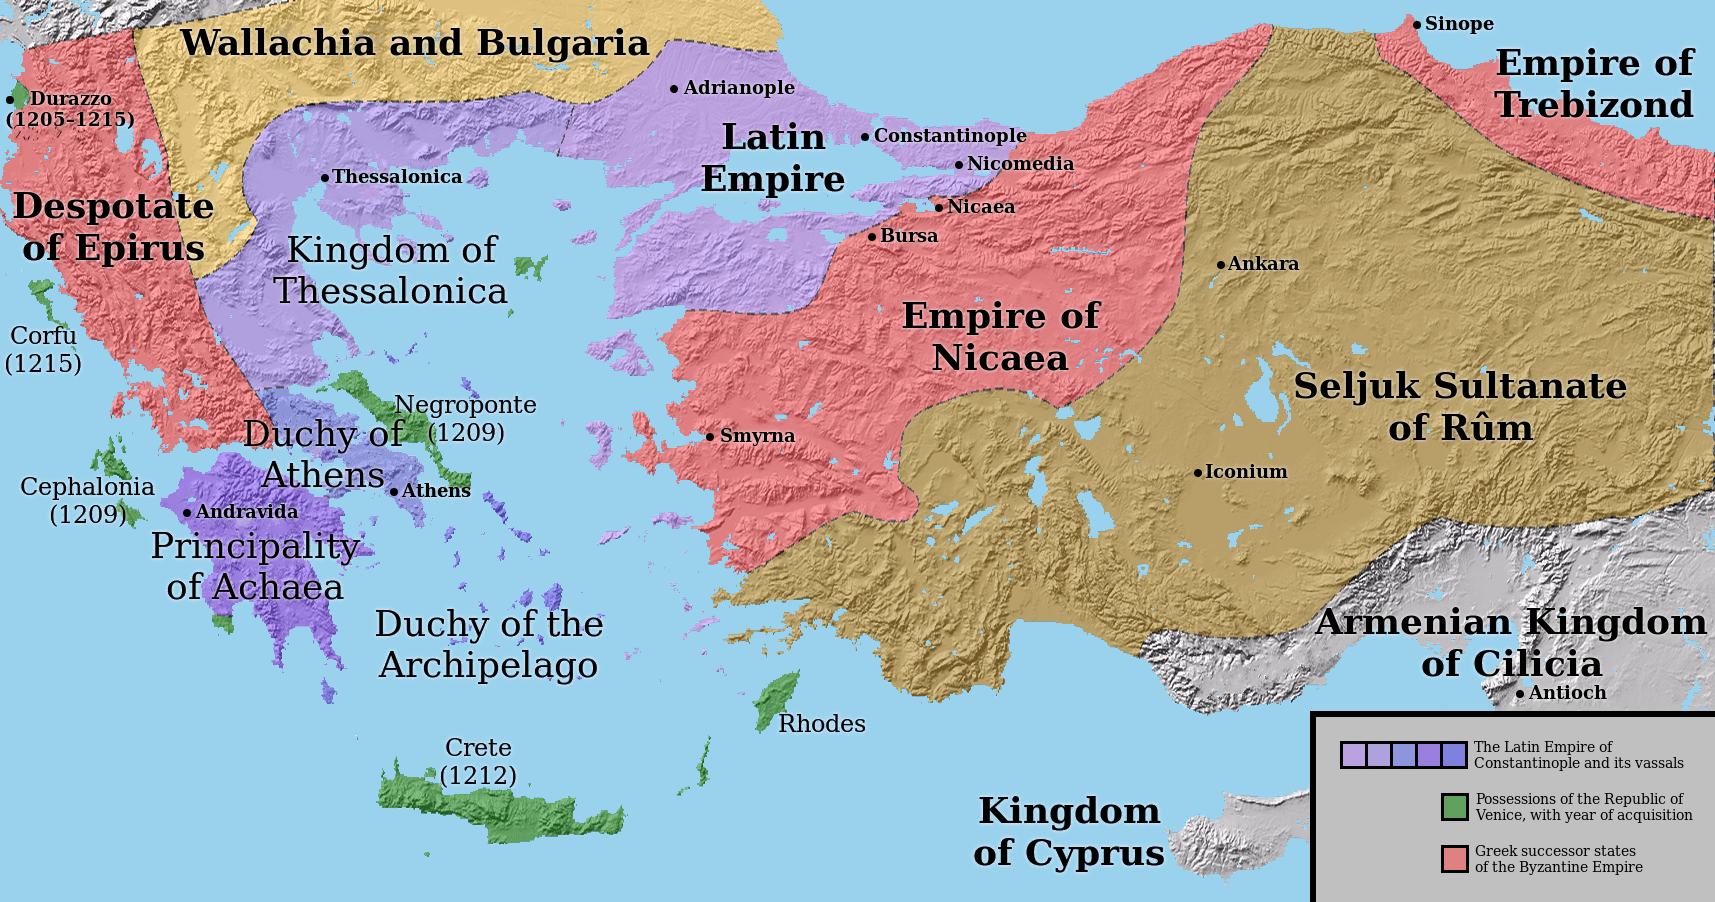 Map showing the outcome of the Fourth Crusade, Courtesy Wikimedia (http://upload.wikimedia.org/wikipedia/commons/1/1d/LatinEmpire2.png)